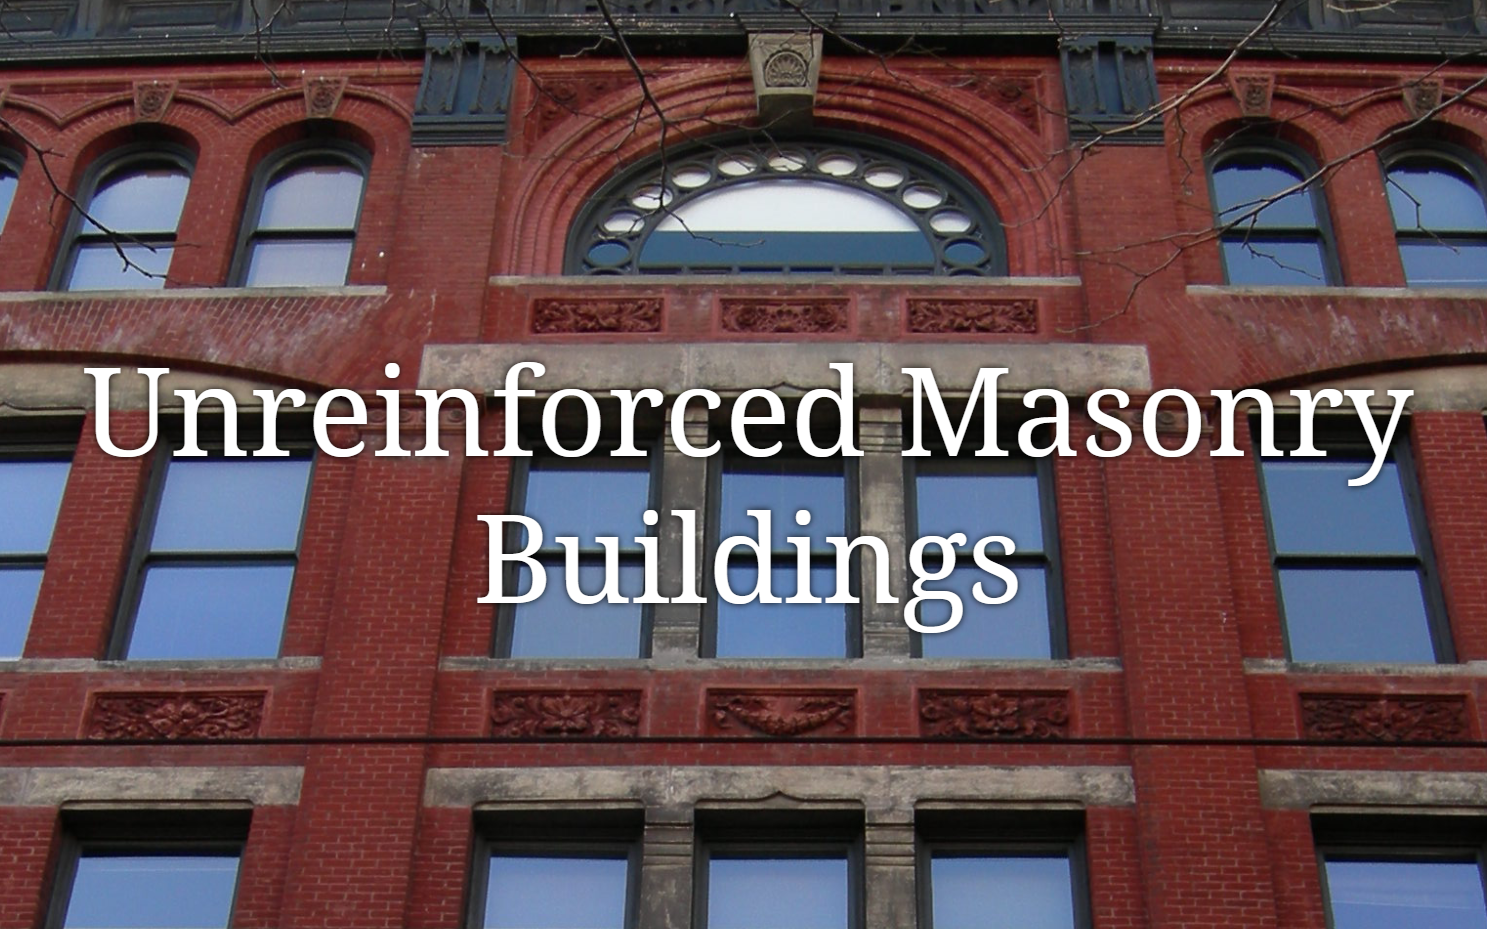 Unreinforced masonry building